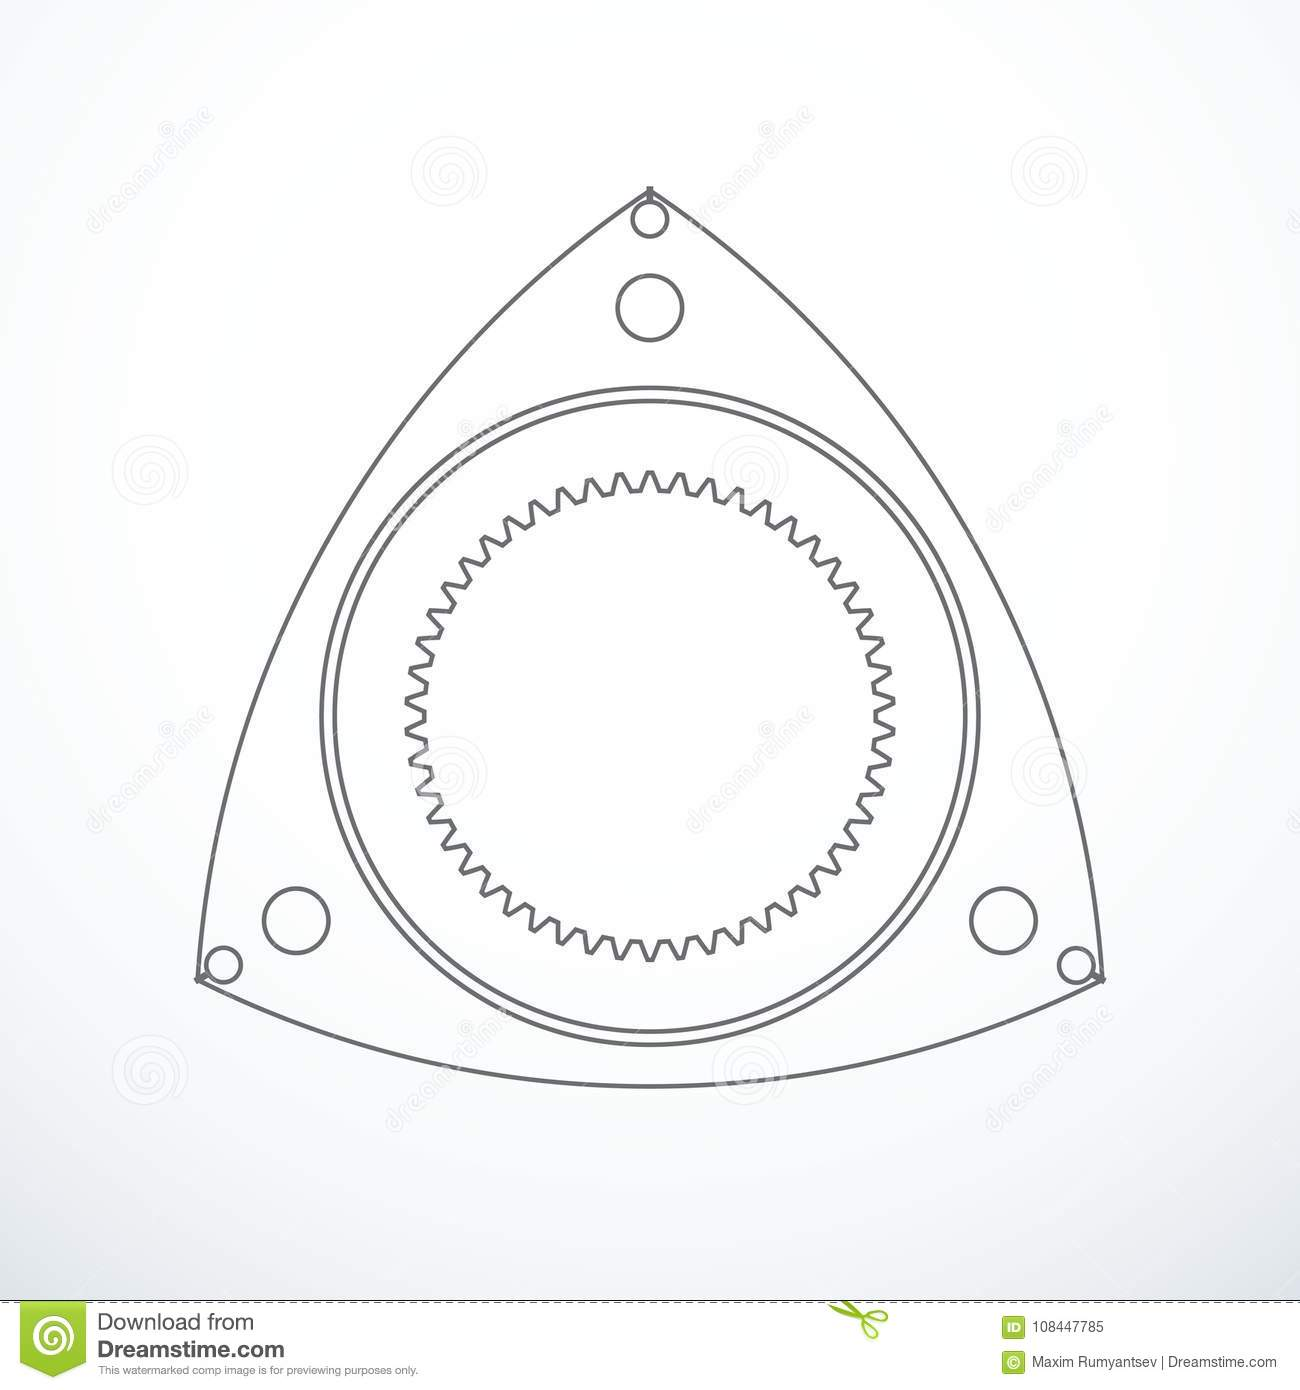 Rotor Of Rotary Wankel Engine Vector Illustration Stock